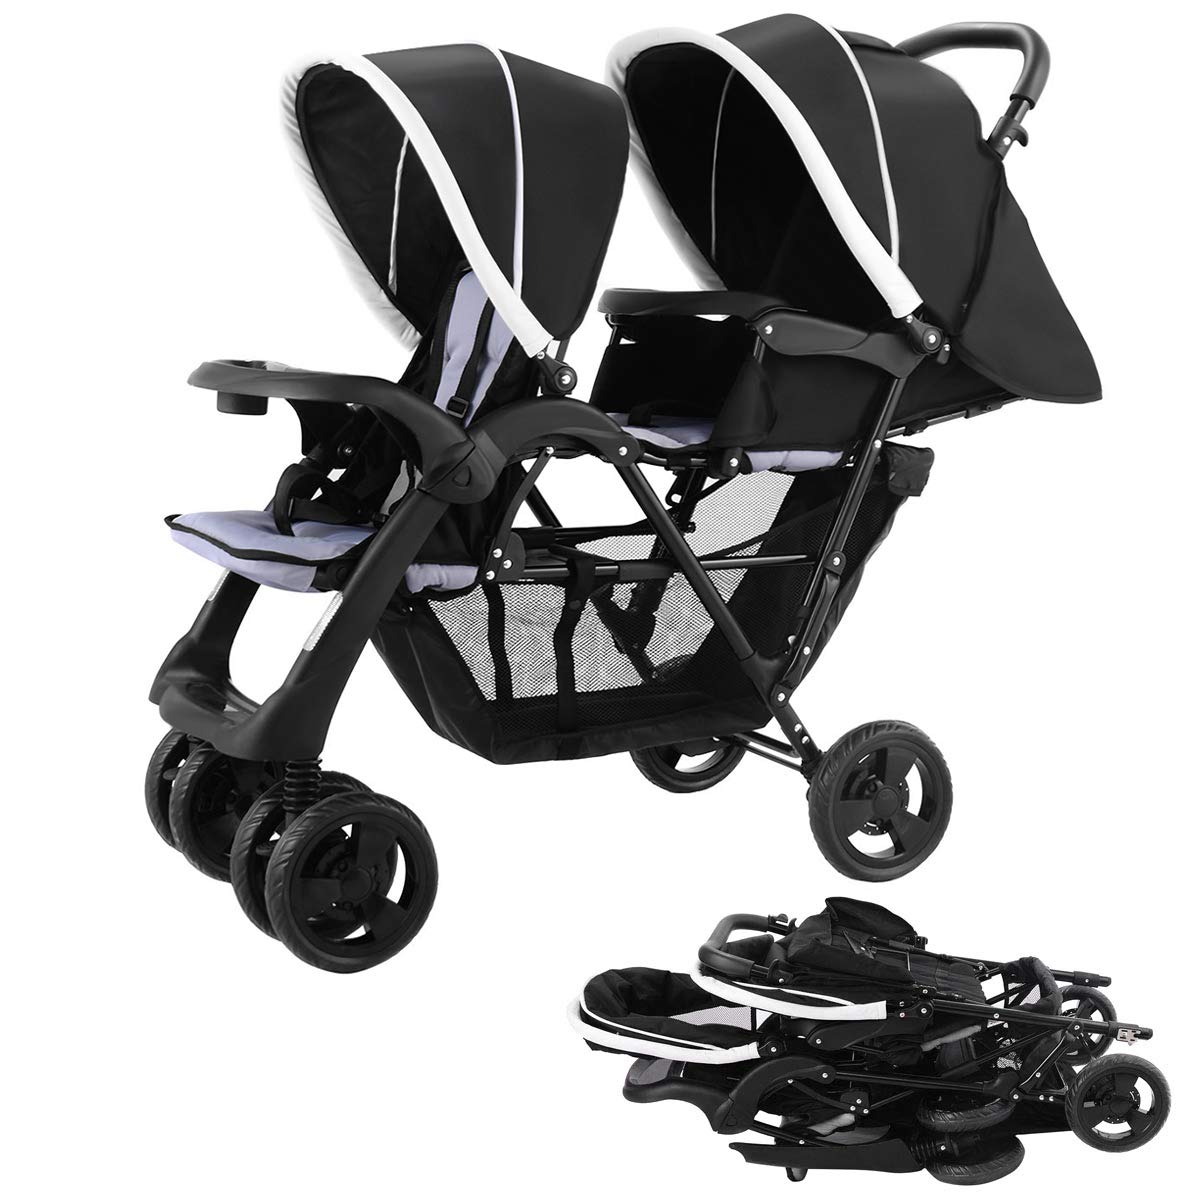 Costzon Foldable Double Stroller Baby Infant Pushchair Travel Jogger w/Storage Basket